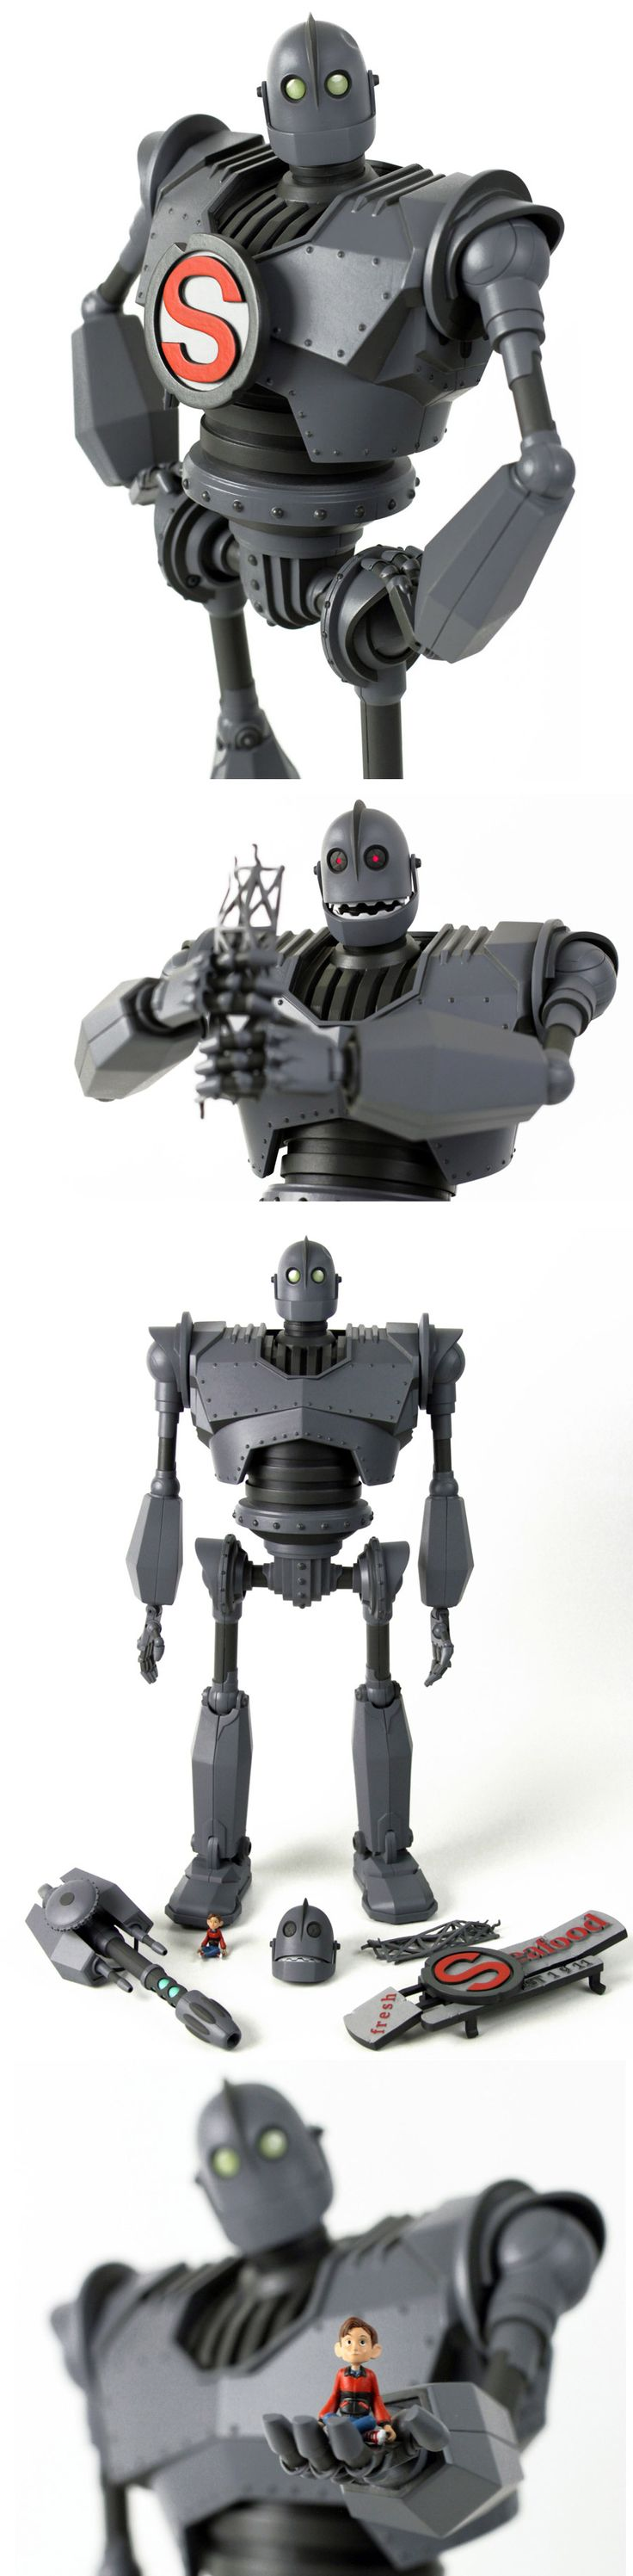 "The Iron Giant Deluxe Figure by Mondo- when I decided to work on a robot story, The Iron Giant was the first thing I thought of. I'm sure I'm not the only one who still get's choked up hearing the phrase ""Supermaaan"""